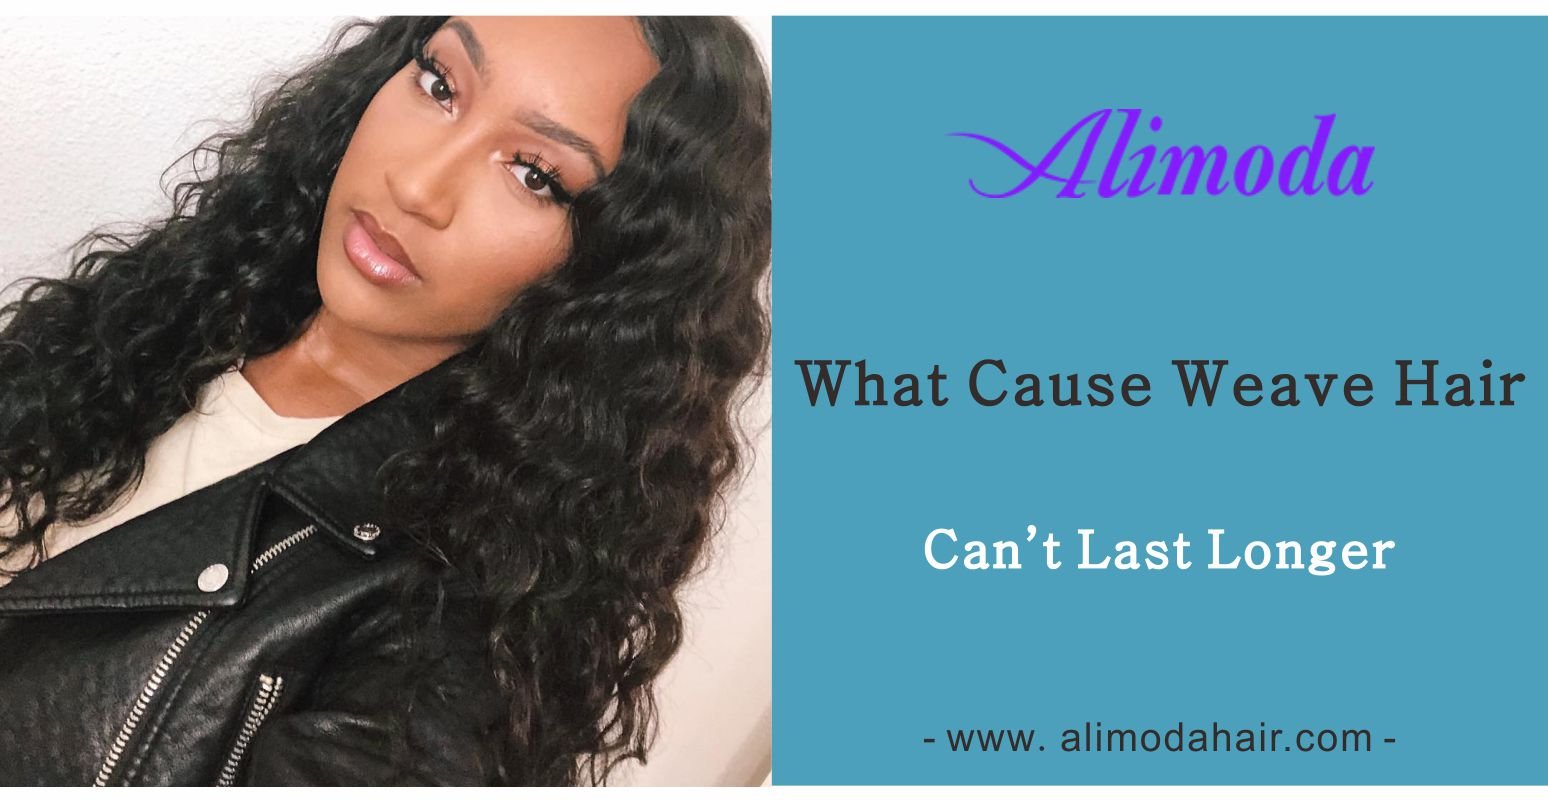 What cause weave hair can't last longer